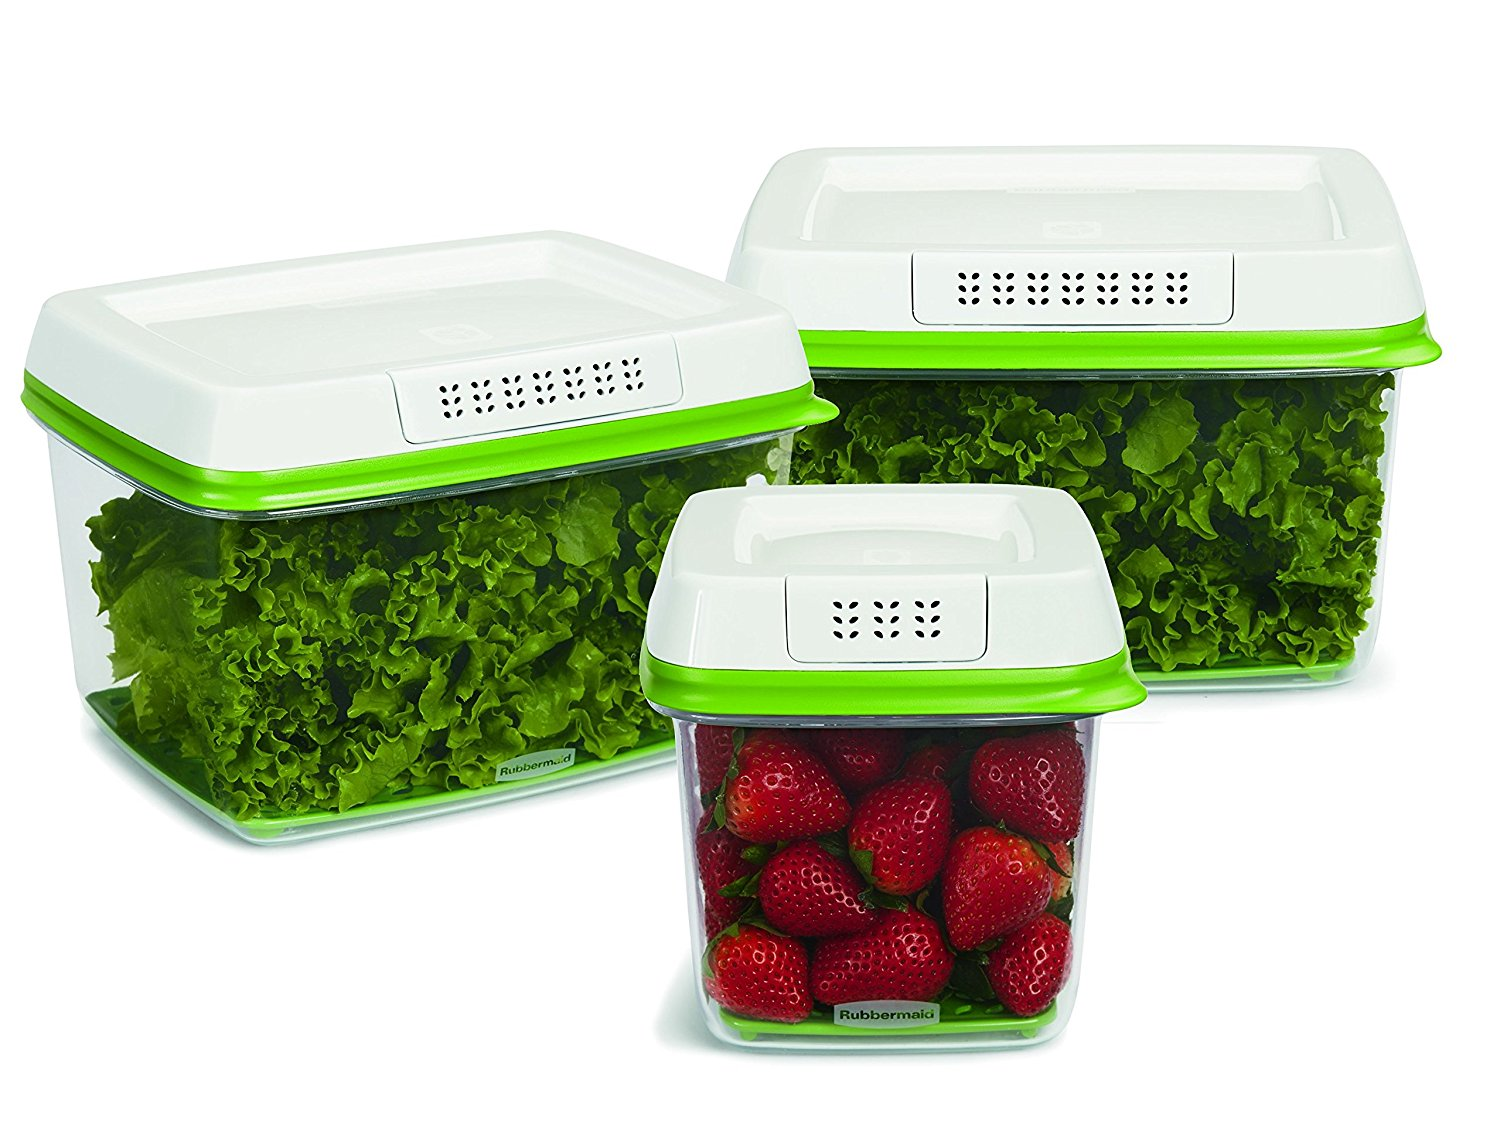 Amazon Lowest Price Set of 3 Rubbermaid FreshWorks Produce Saver